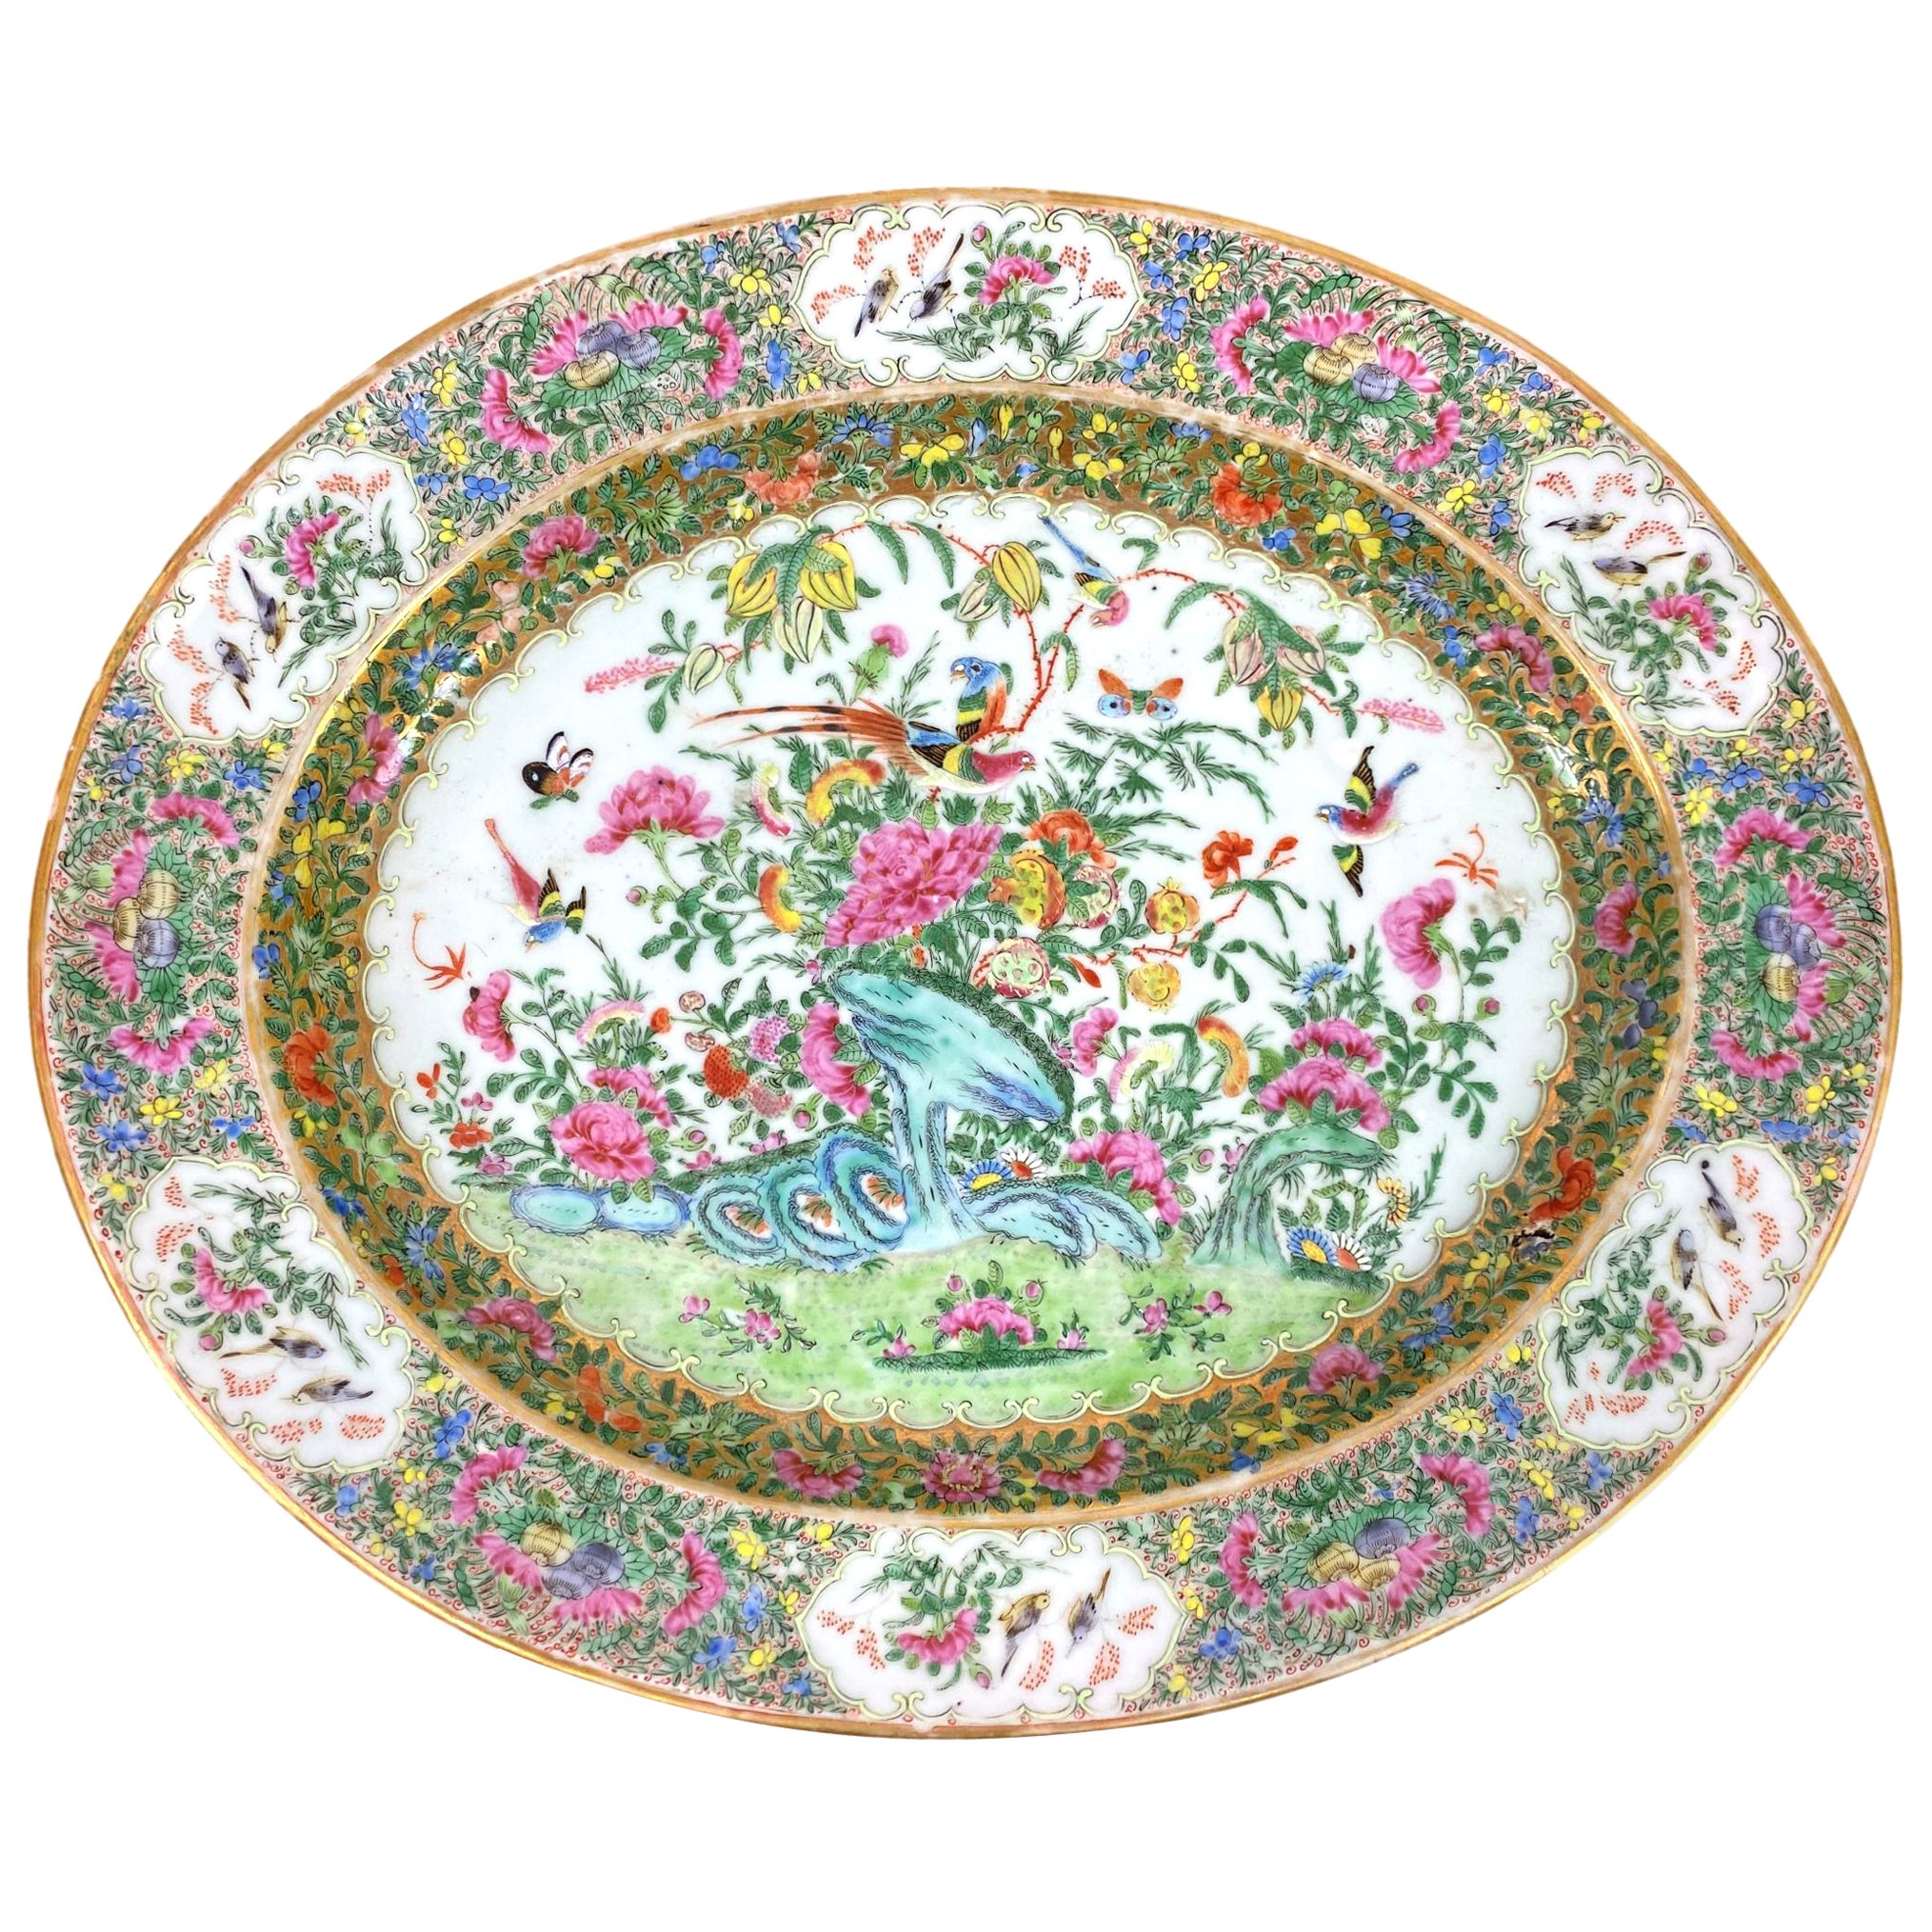 Large Chinese Export Porcelain Famille Rose Medallion Platter, Canton, ca. 1820